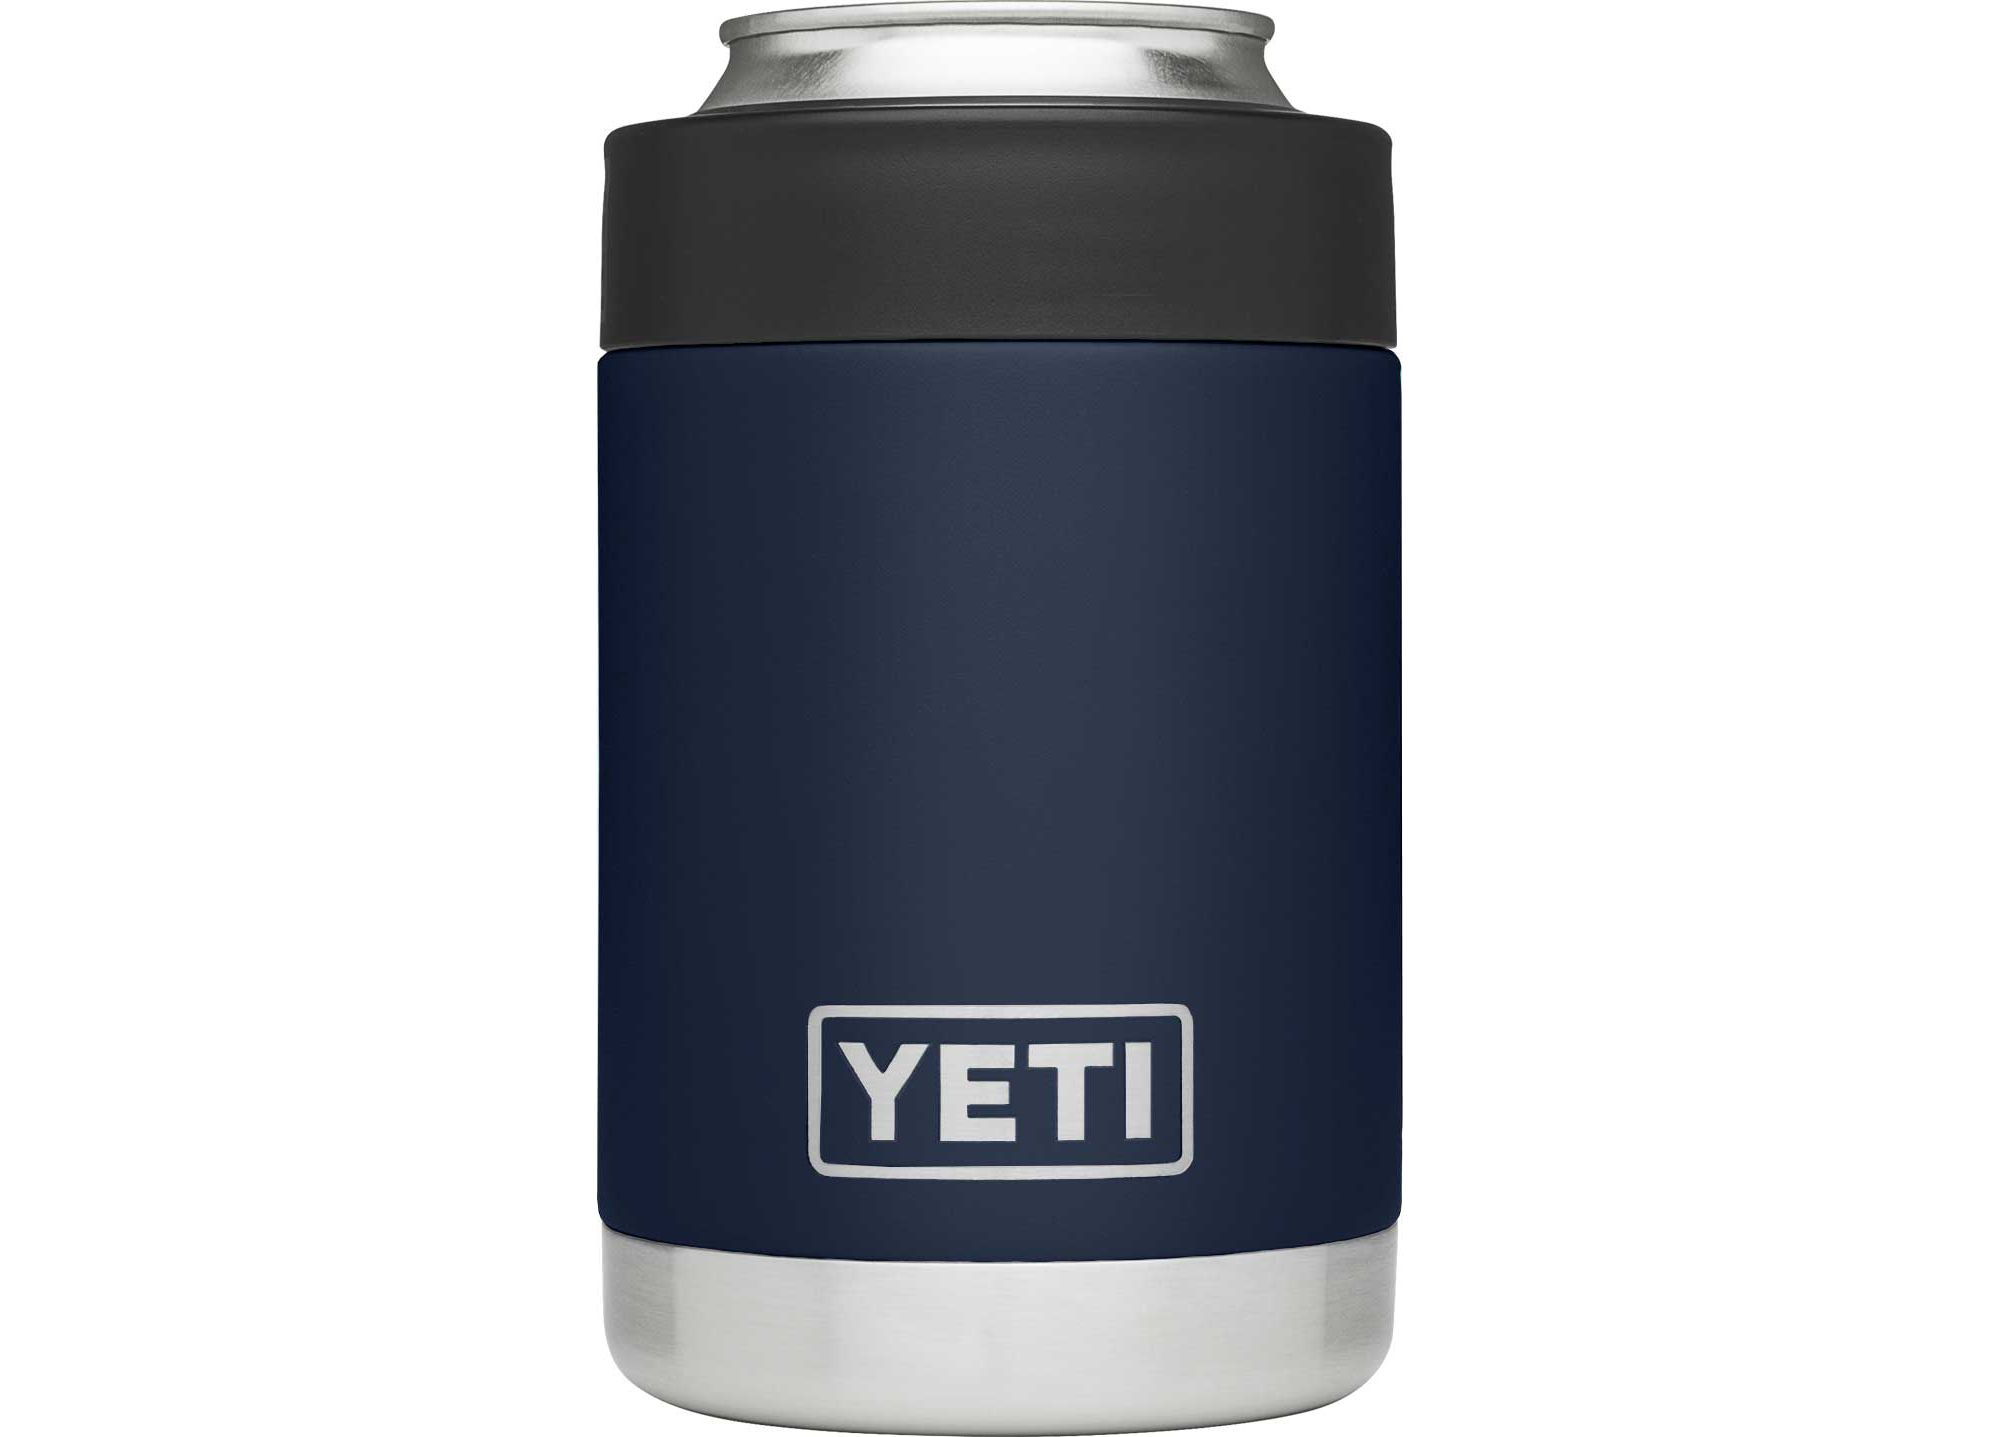 Yeti Rambler Colster - Father's Day Gift Idea